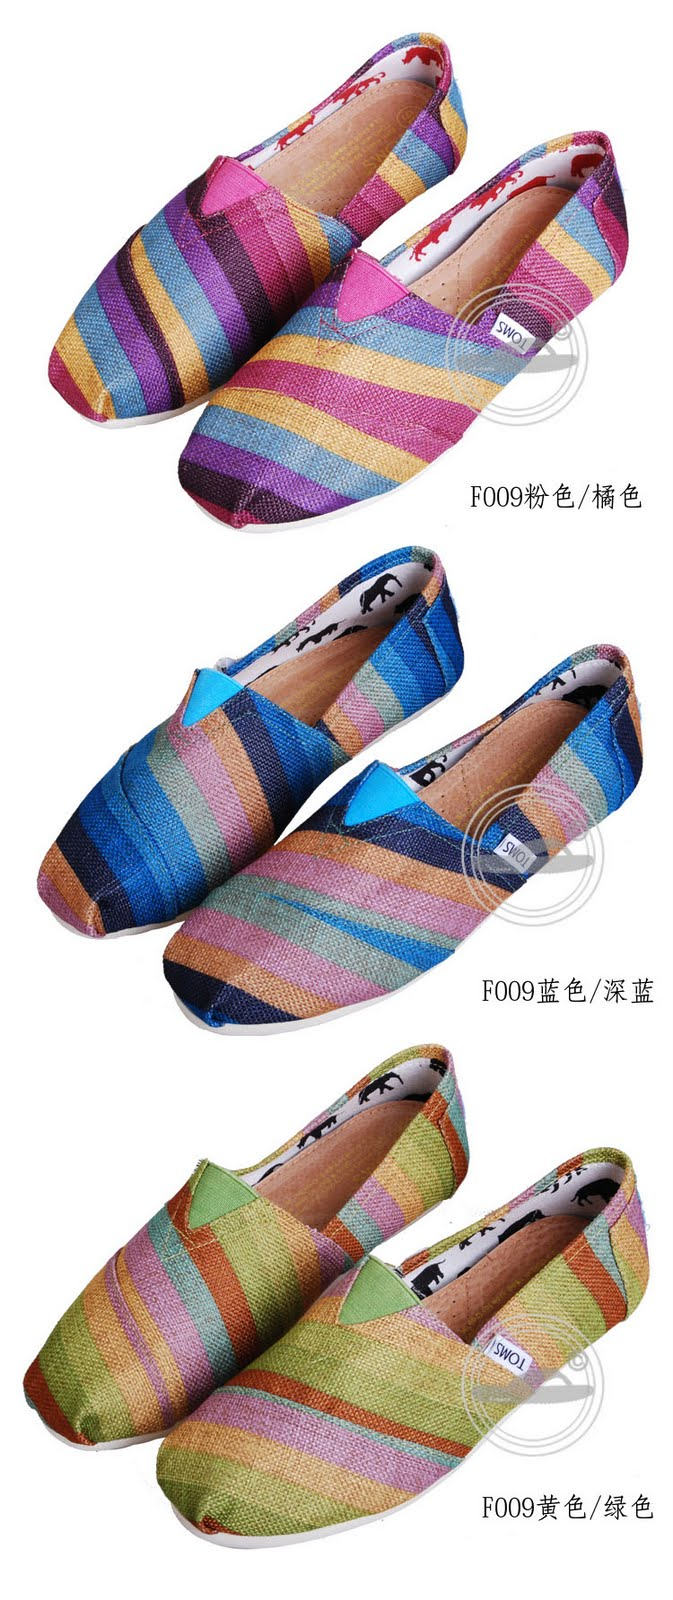 95220b845f4 Lala Lovely Bites  Non-Authentic TOMS Shoe